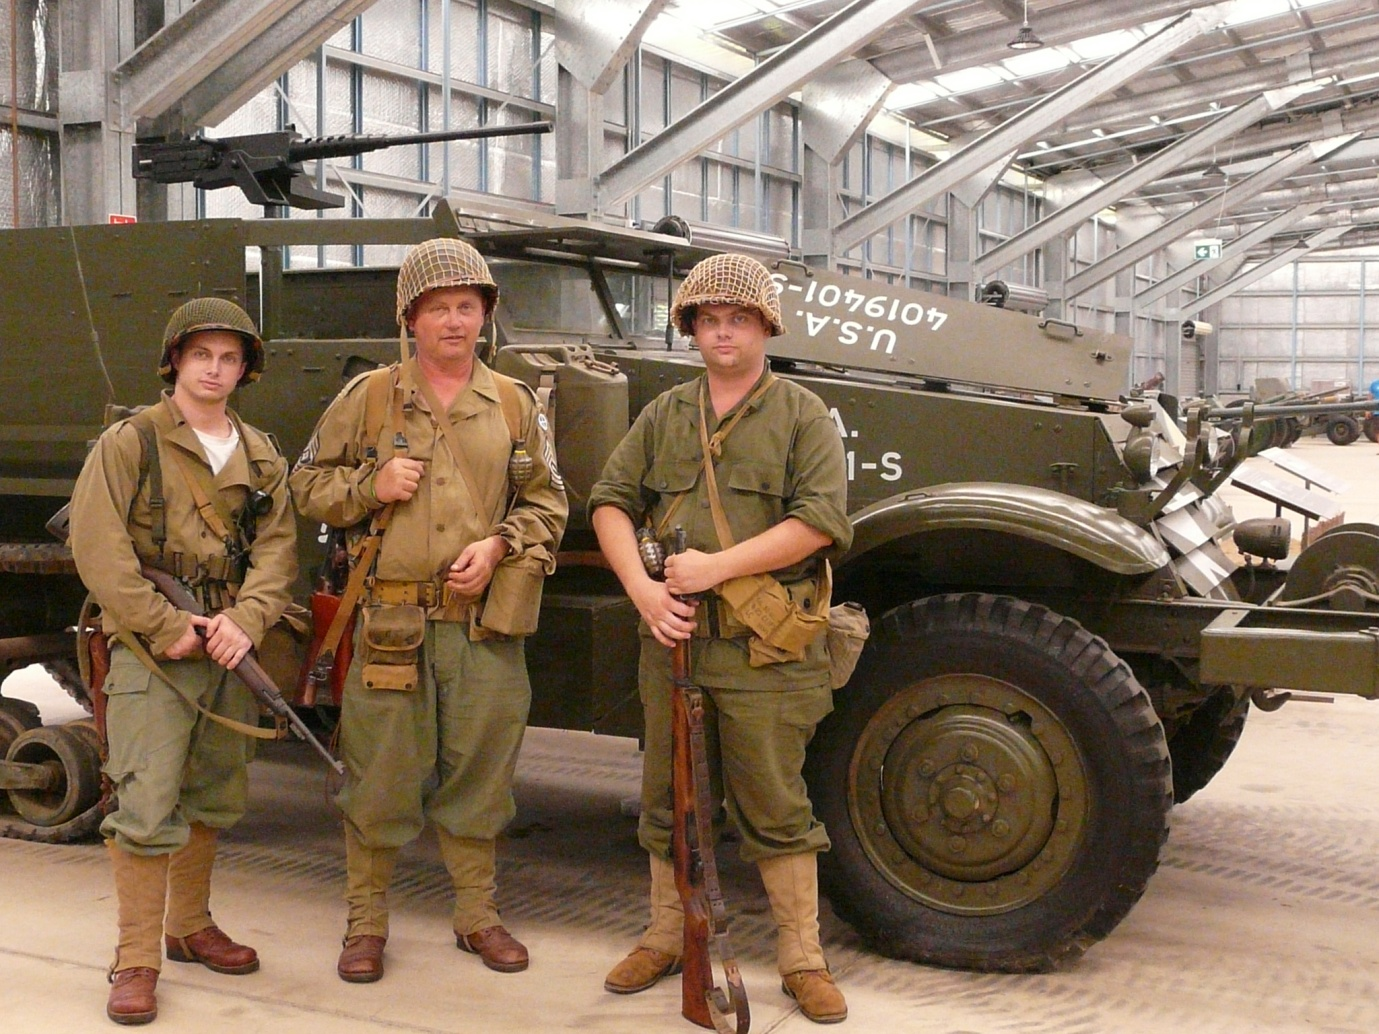 """The day I went was a re-enactors' day. """"Soldiers"""" came from all parts of the country, such as this father and two sons from Sydney, to indulge their passion and help out."""